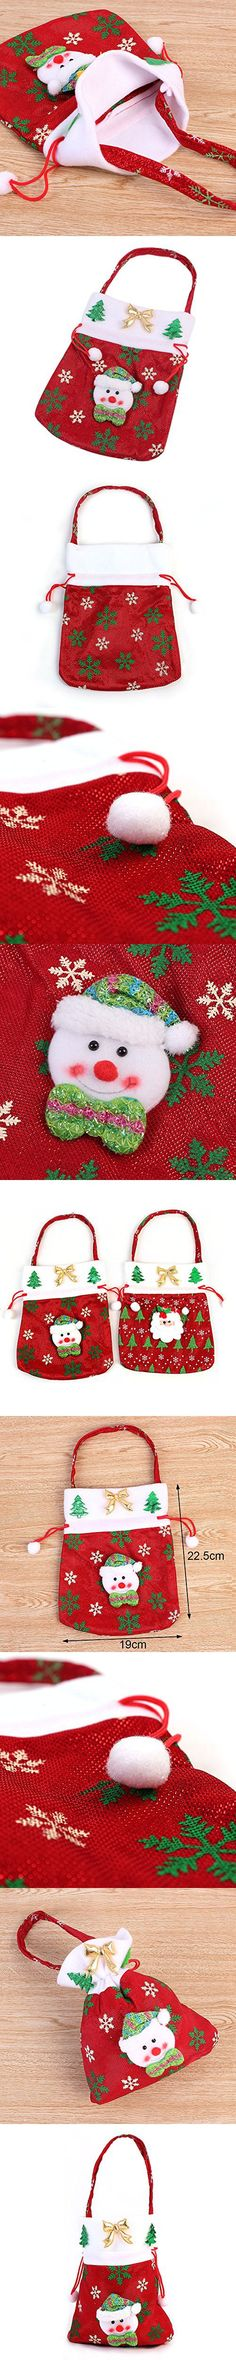 Christmas Candy Gifts Bag Sack Stocking Filler Present Bag Stocking Bag Christmas Santa Gift Sack with Cord Drawstring Xmas Decor Pics 1 Pics (Picture 2)